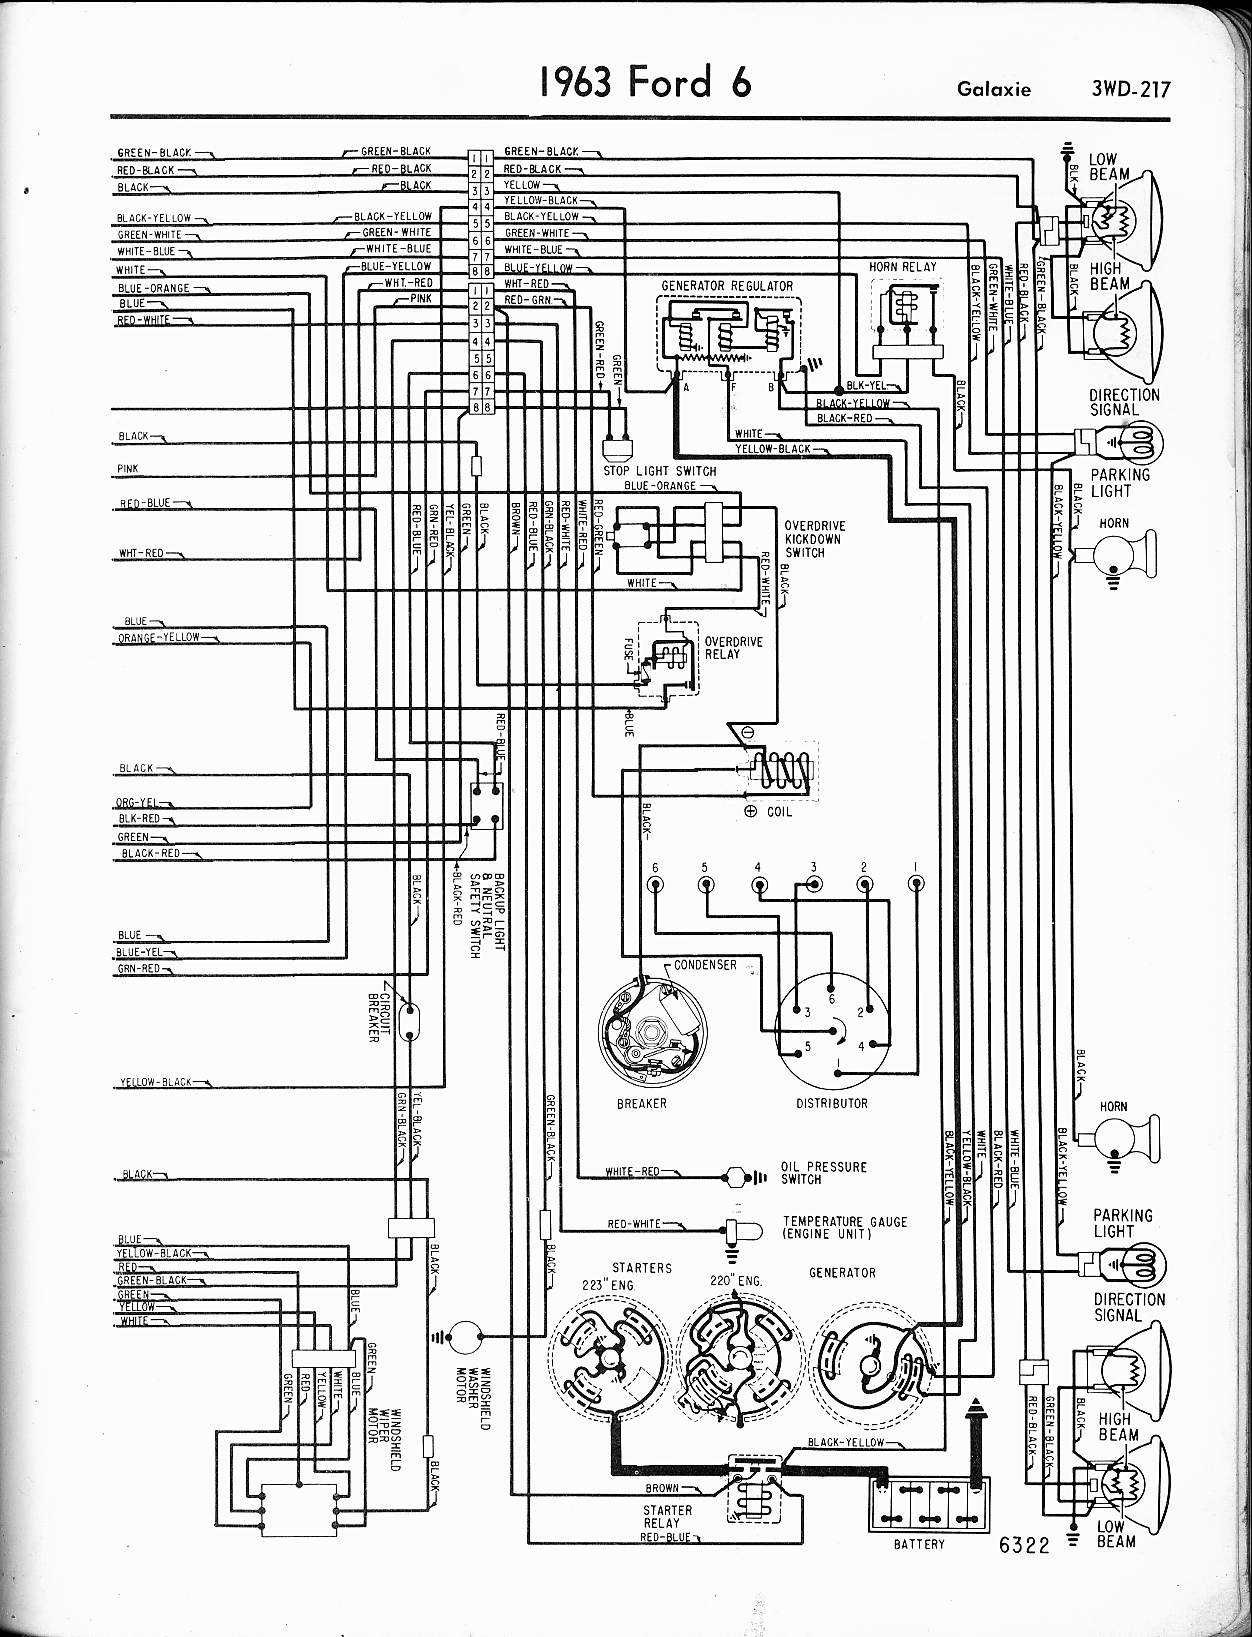 Old Car Manual Project Wiring Diagrams